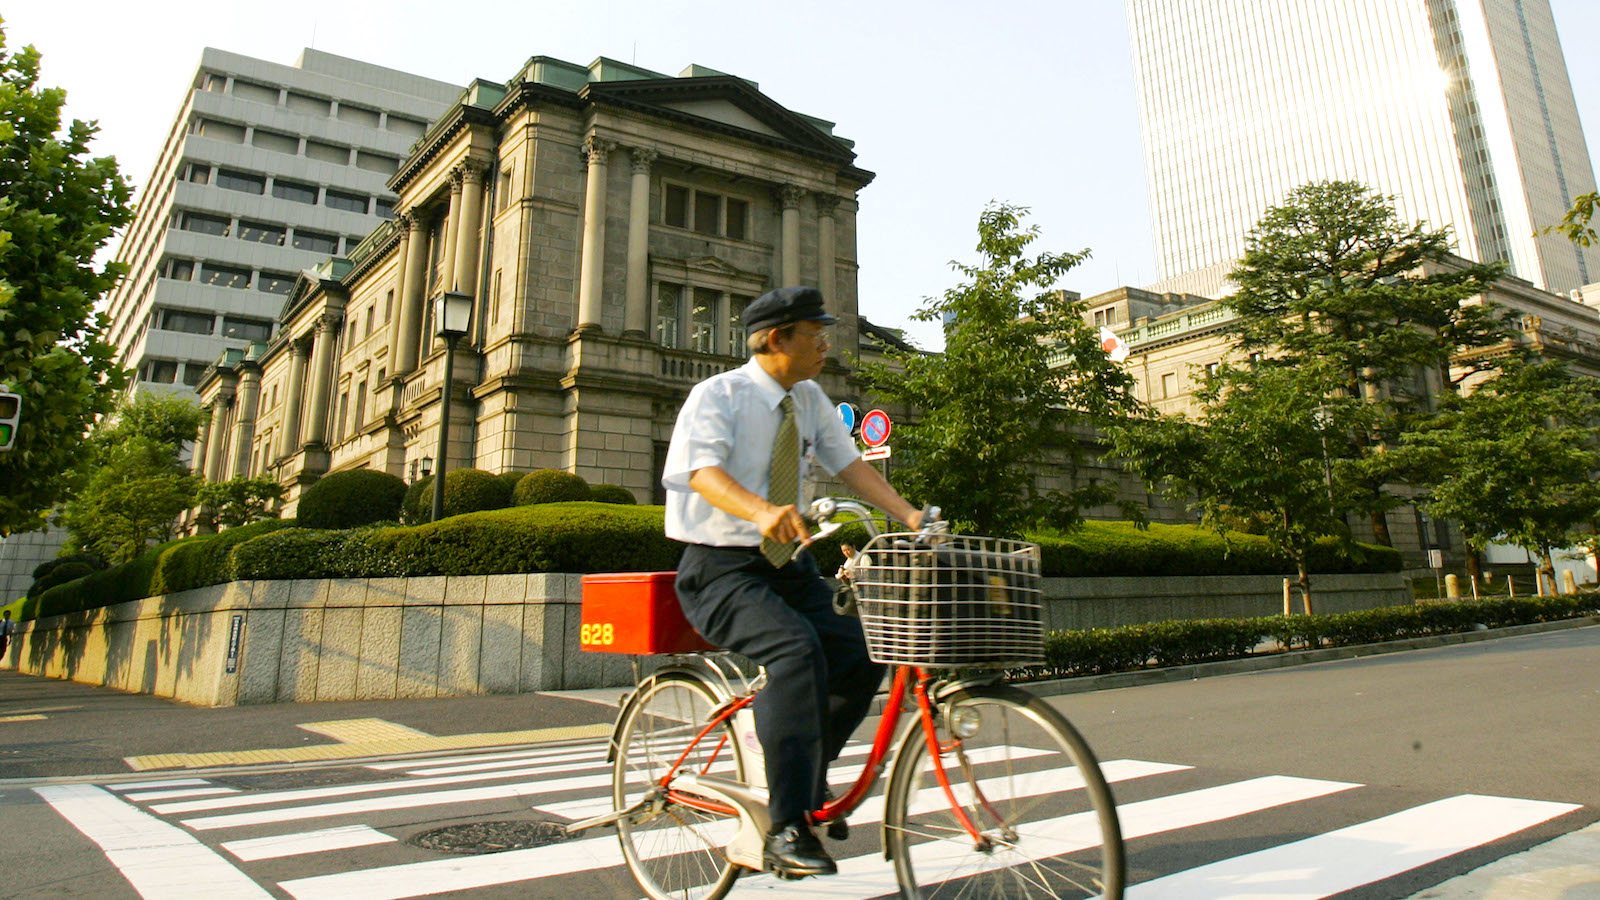 A postman rides a bicycle in front of the Bank of Japan in Tokyo Friday, Aug. 10, 2007. Japan's central bank injected 1 trillion yen (US$8.4 billion) into money markets Friday amid a Tokyo stock plunge and growing global worries about dubious U.S. mortgages. (AP Photo/Katsumi Kasahara)